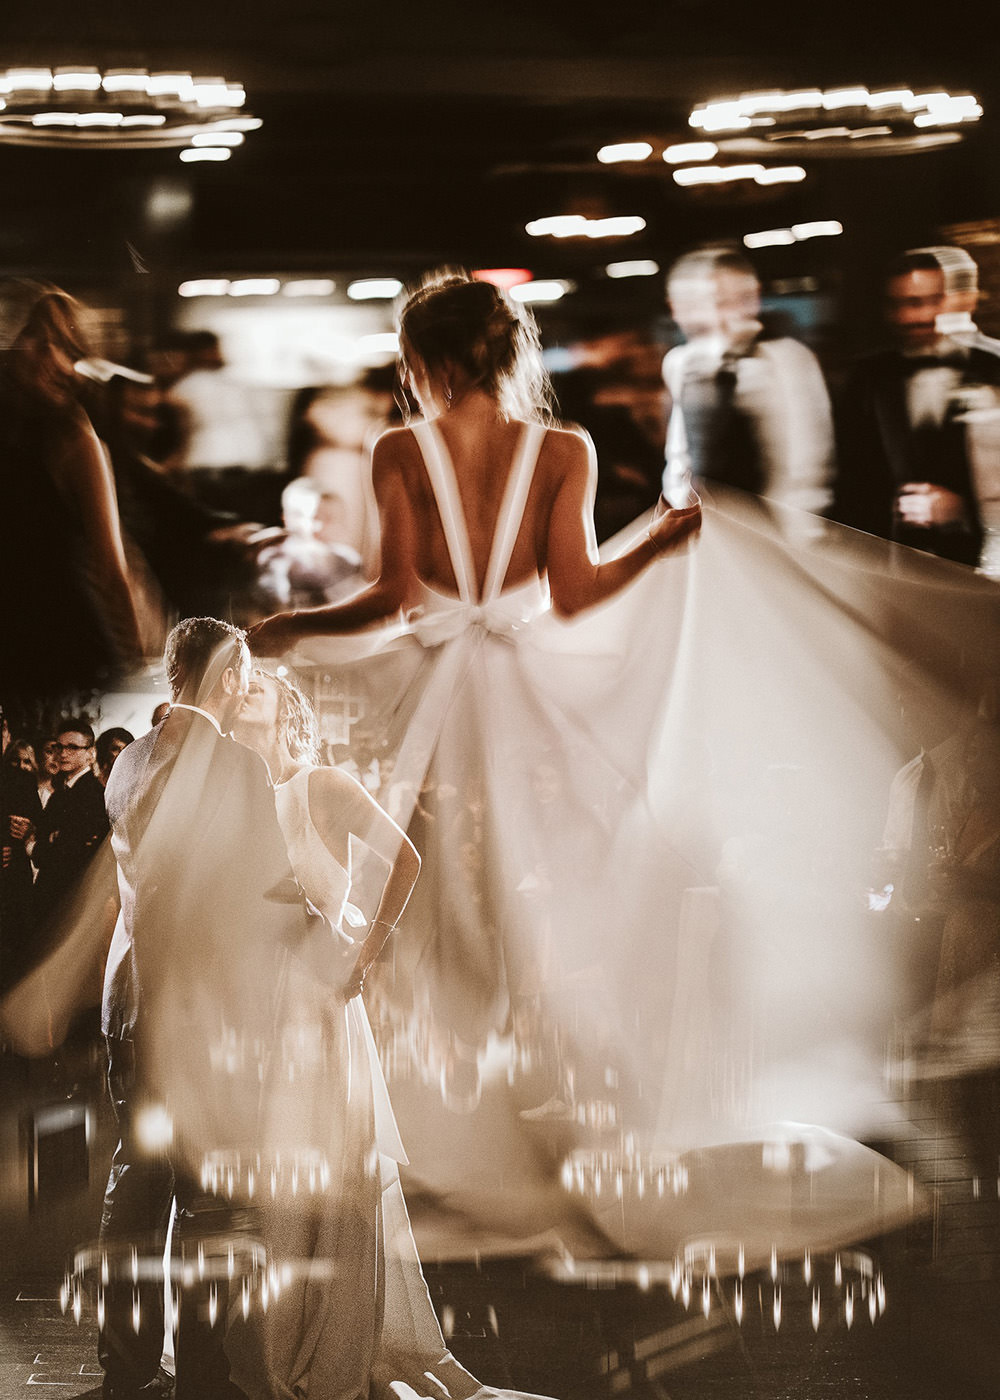 a double exposure of a bride dancing and the wedding couple kissing on the dancefloor